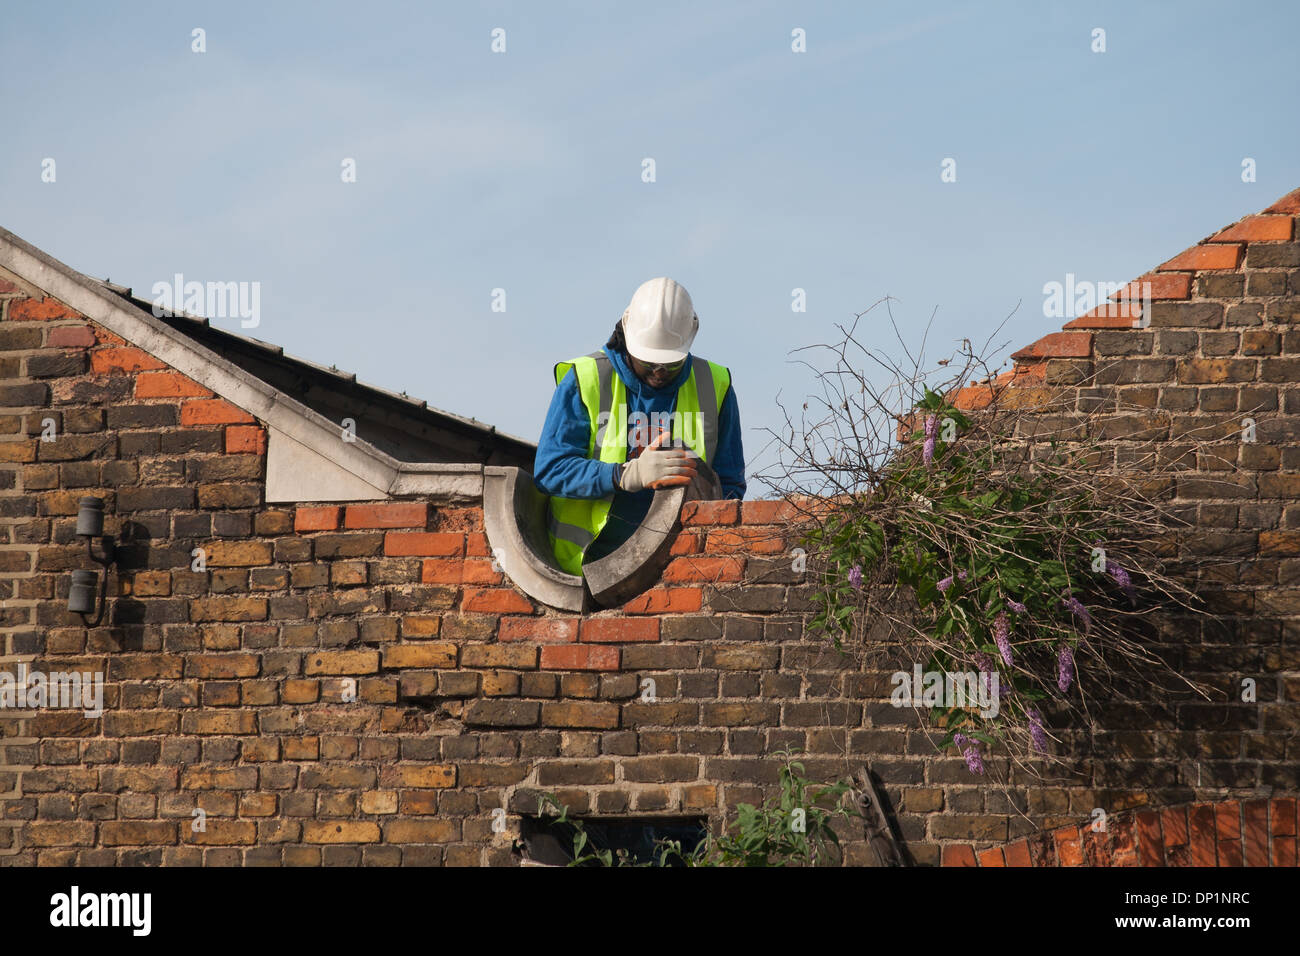 Demolition of industrial Victorian electricity buildings for redevelopment as housing in Twickenham, London, UK - Stock Image